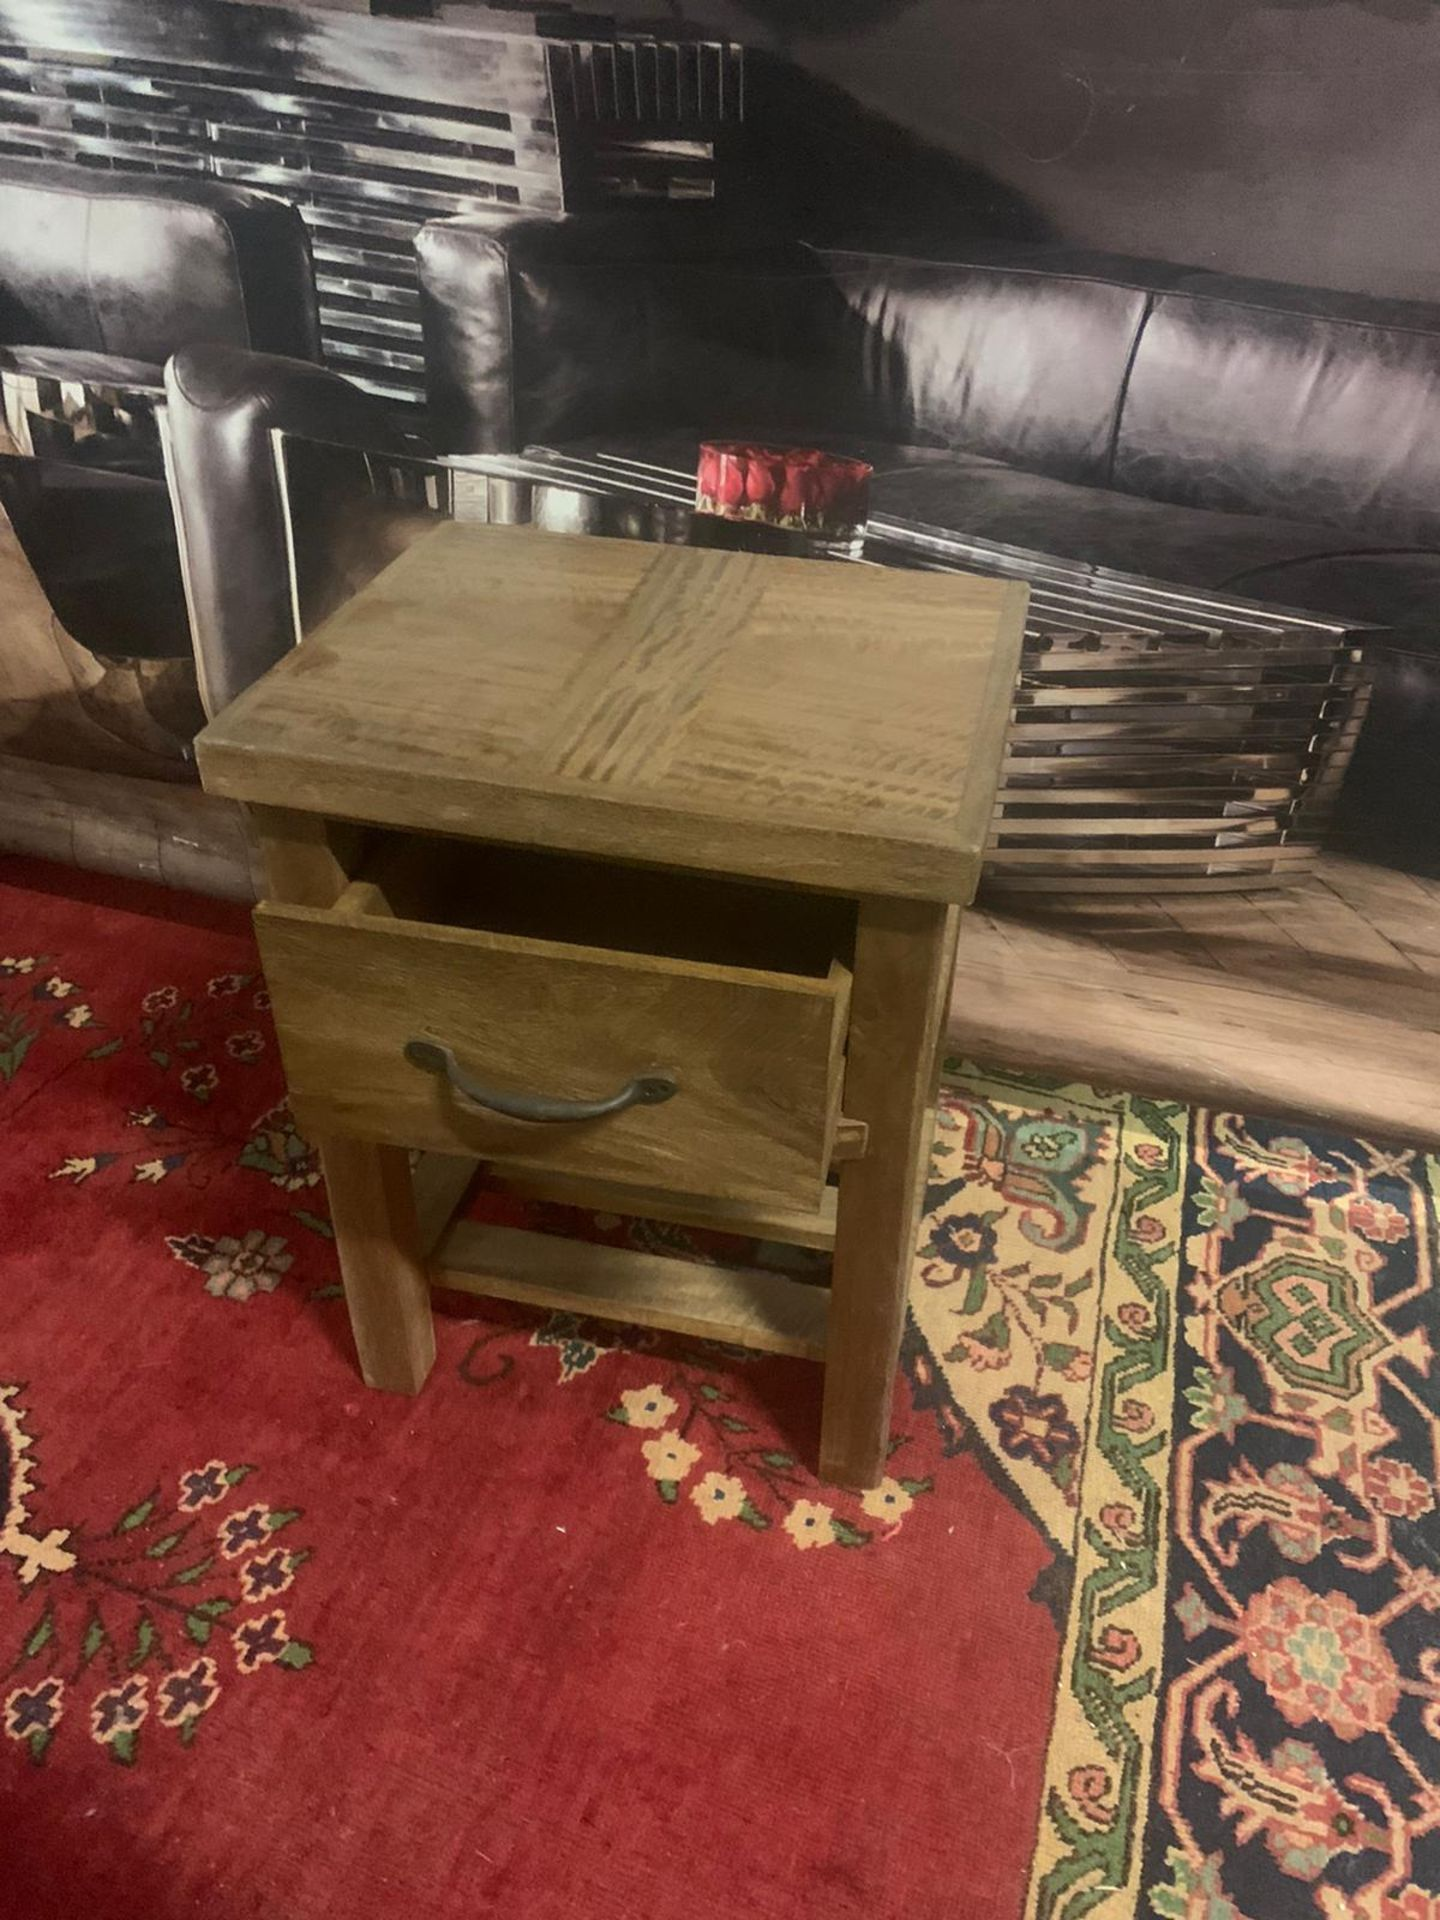 A Pair of Soho Solid Wood Side Table 2 Drawer This Table will complement your decorative scheme - Image 4 of 5